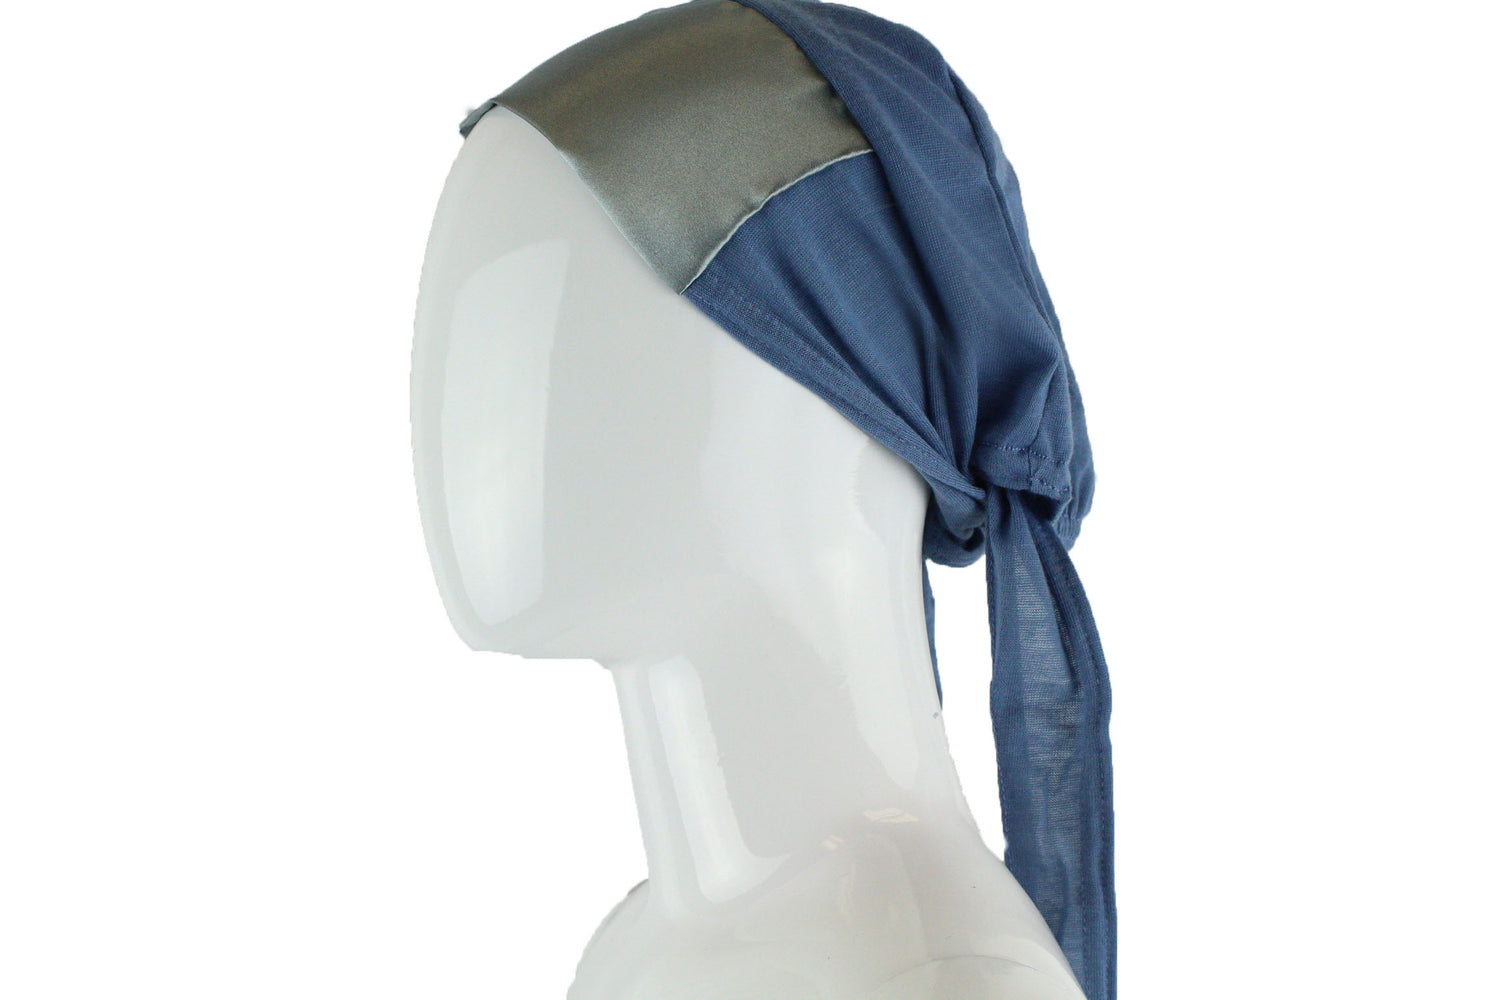 light blue tie back under cap with a satin trim